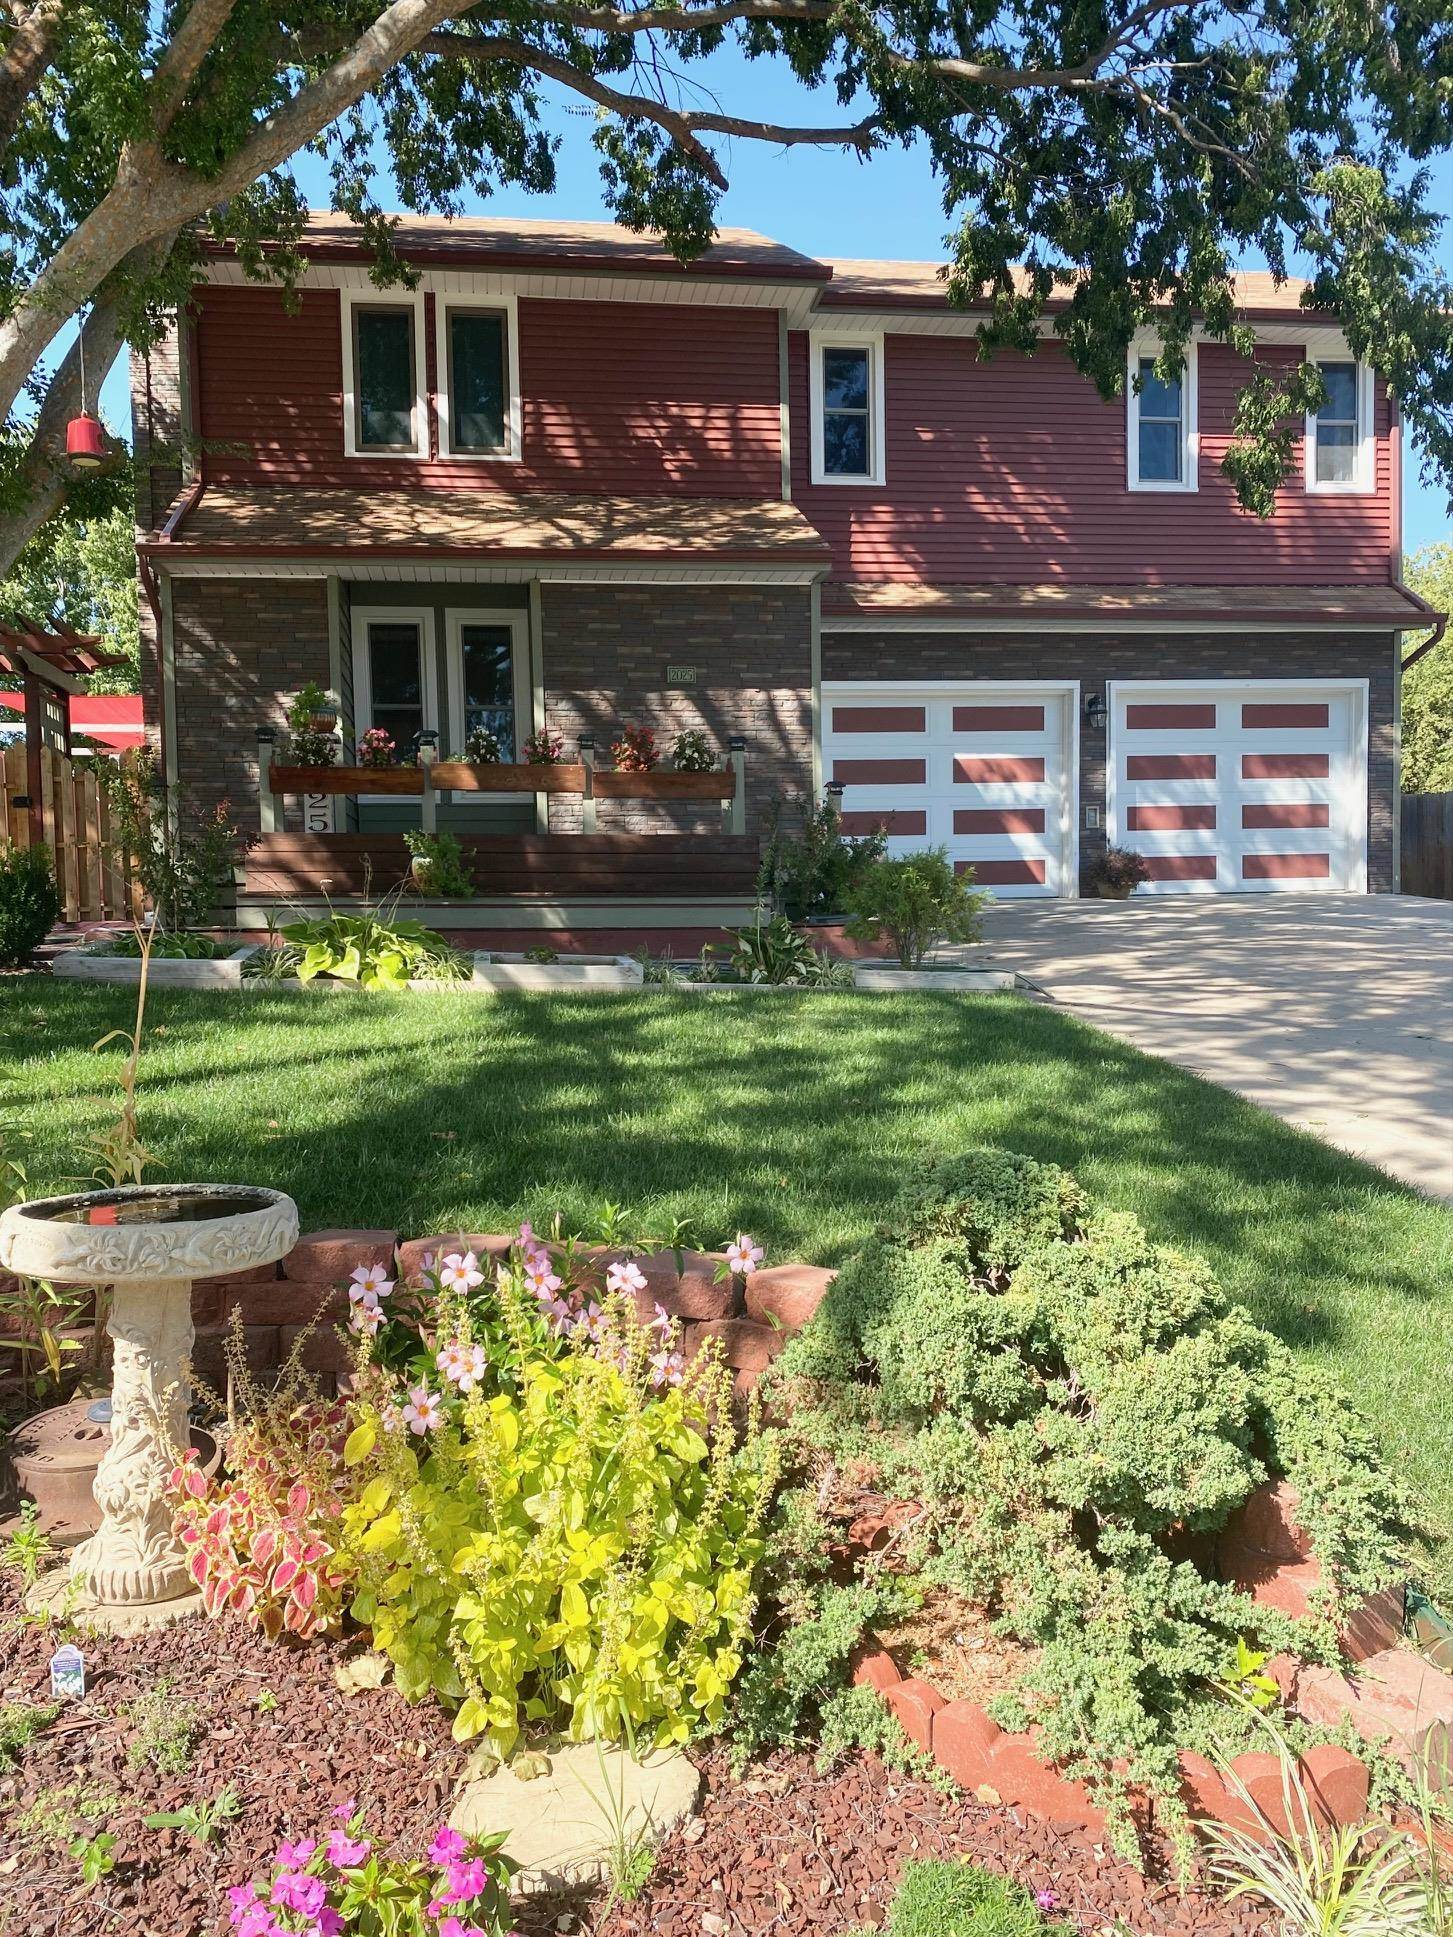 This unique property has been impeccably maintained and features newer siding and windows, huge mast